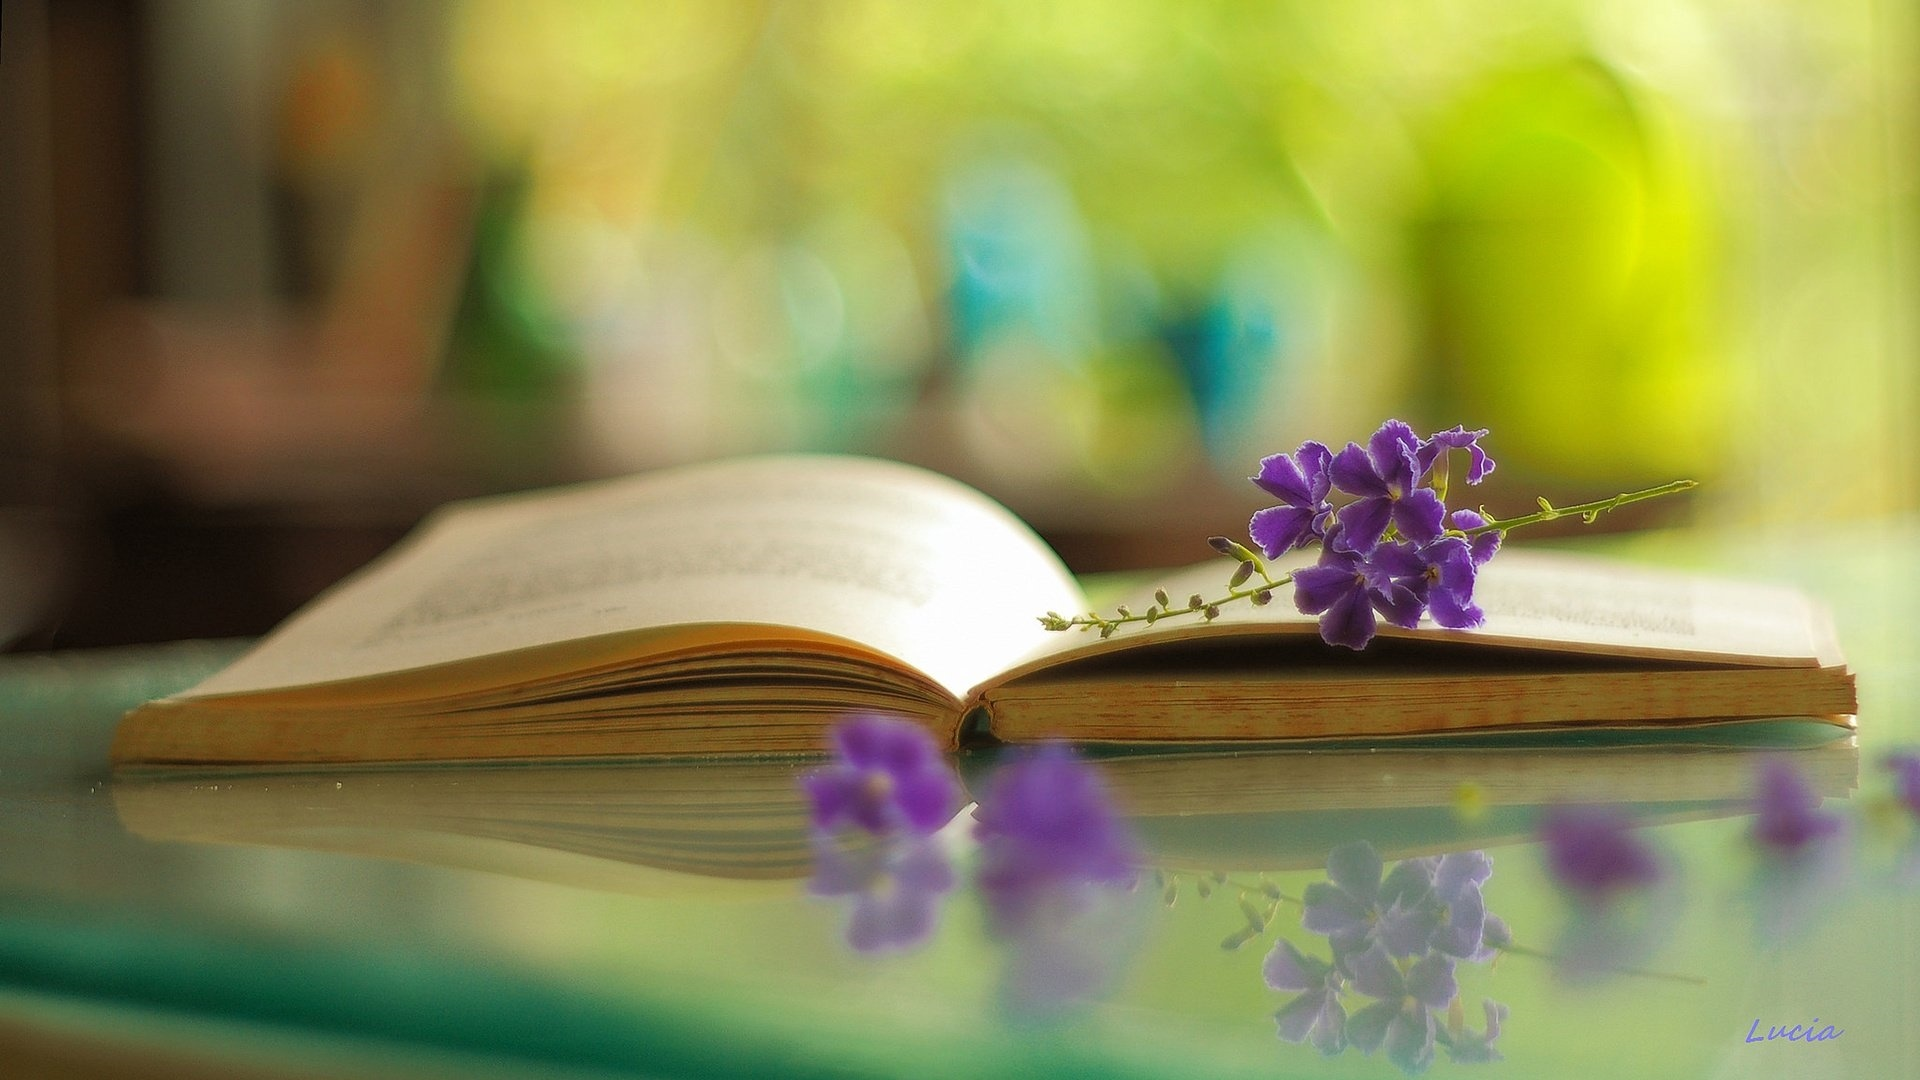 Book And Flower wallpaper photo hd